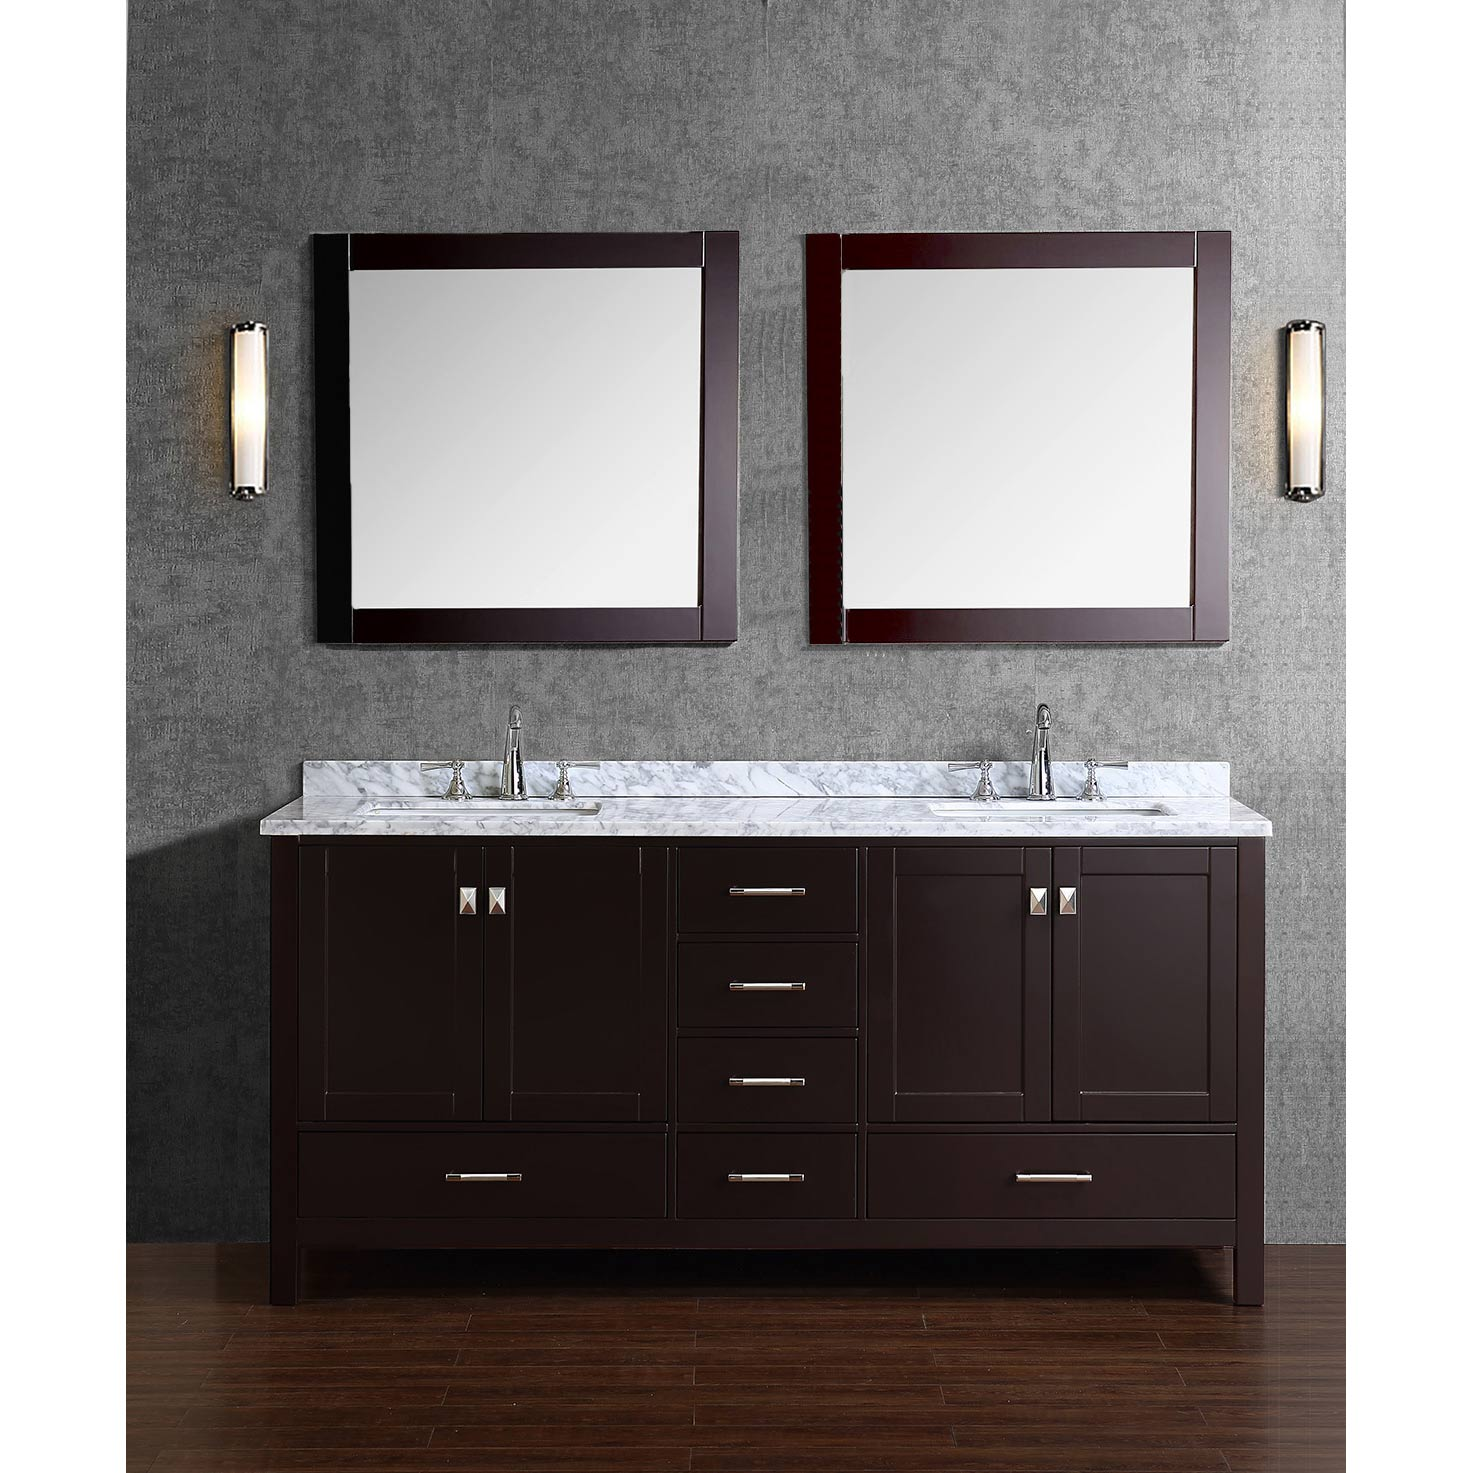 Shop Double Sink Bathroom Vanities 61 to 72 Inches Wide